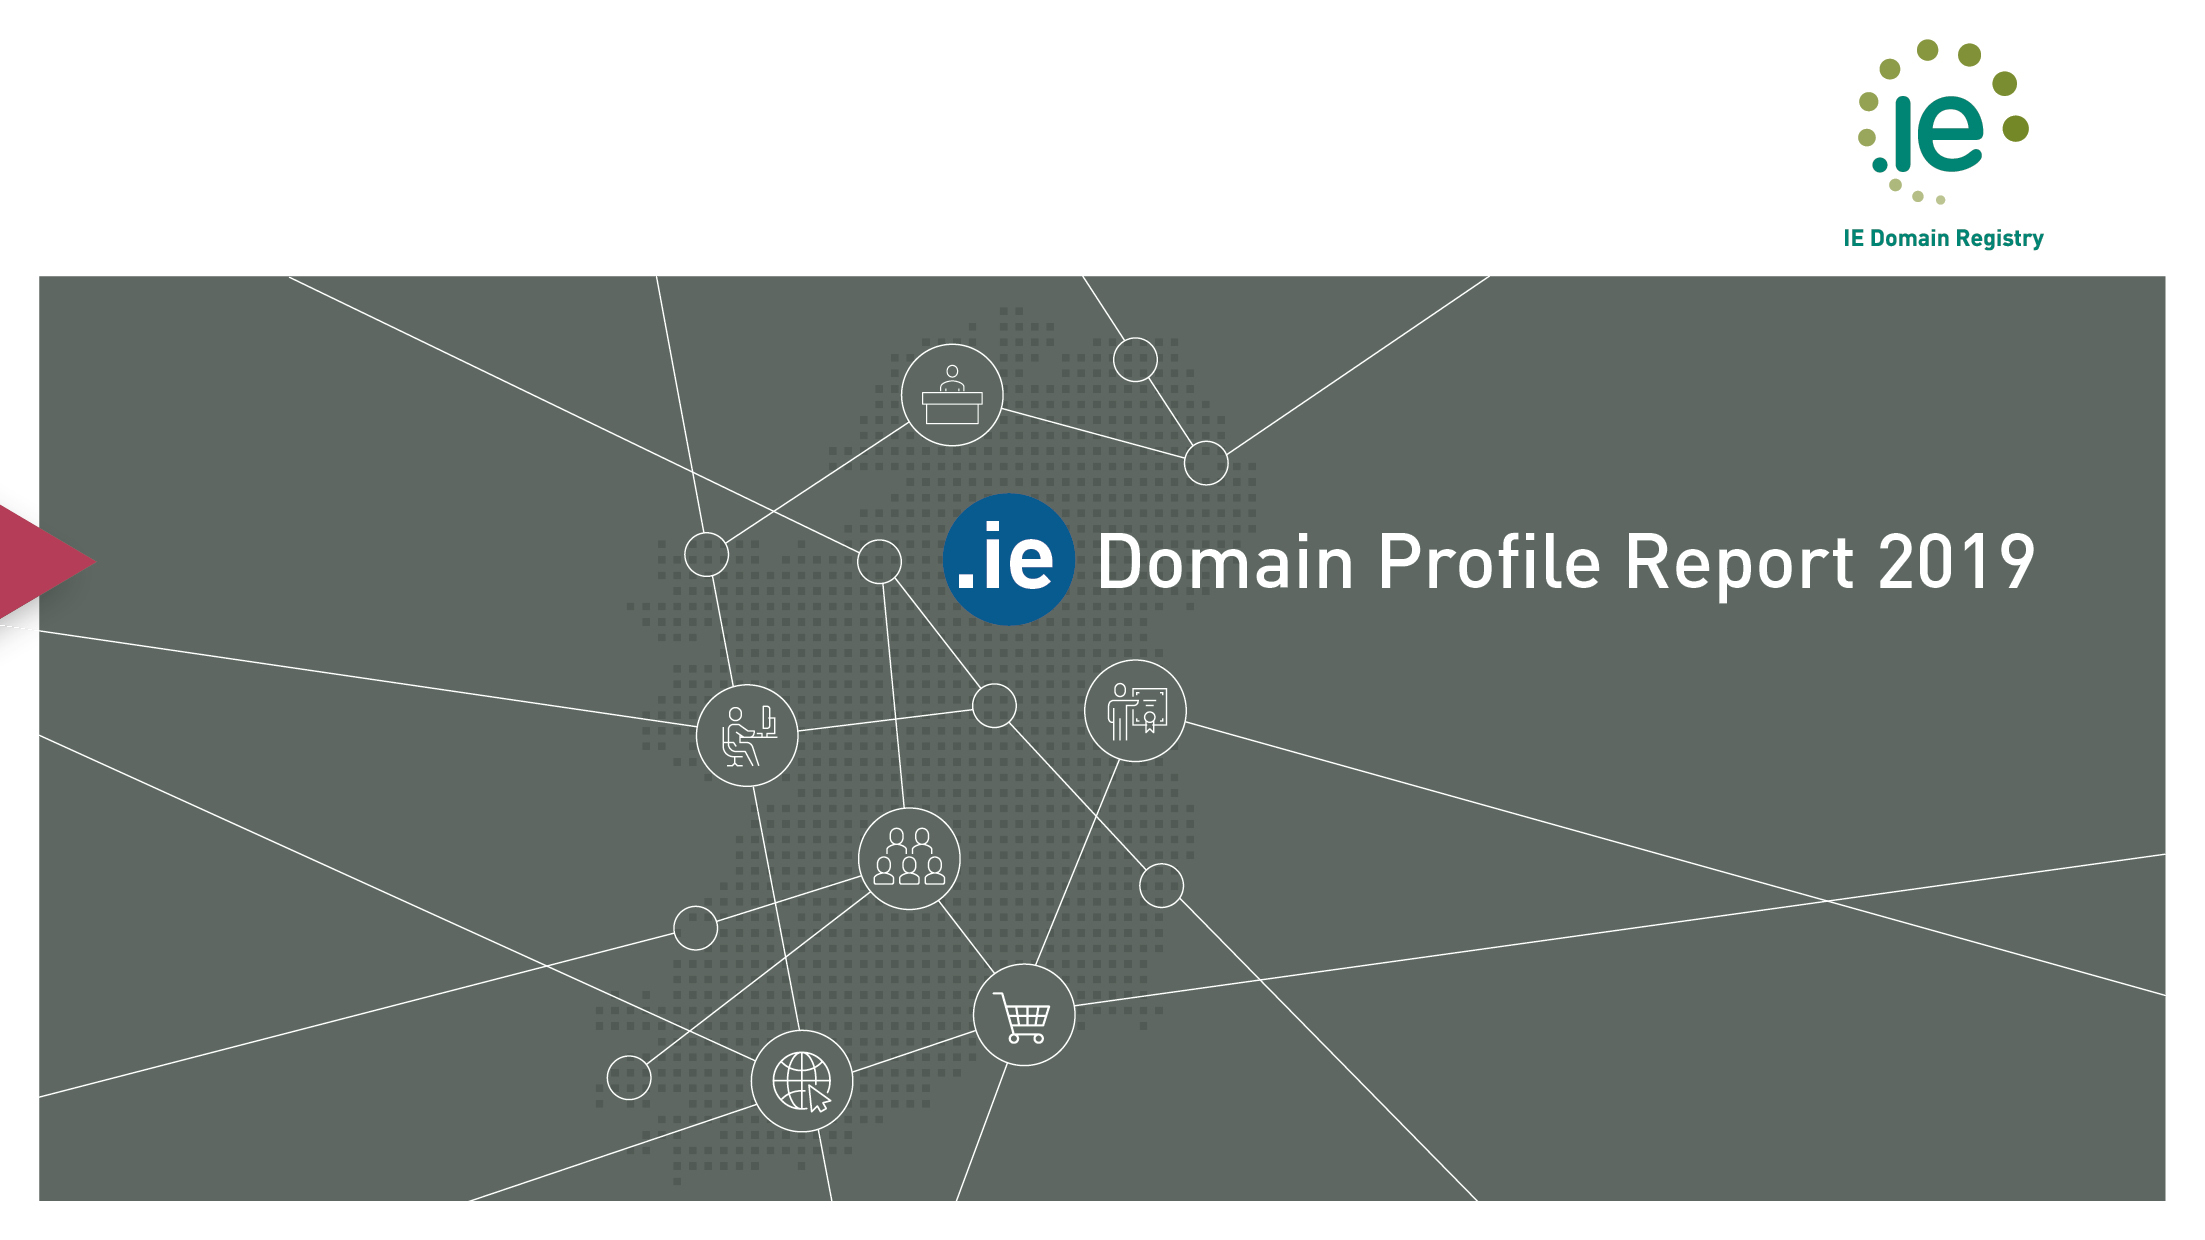 .ie Domain Profile Report 2019 cover